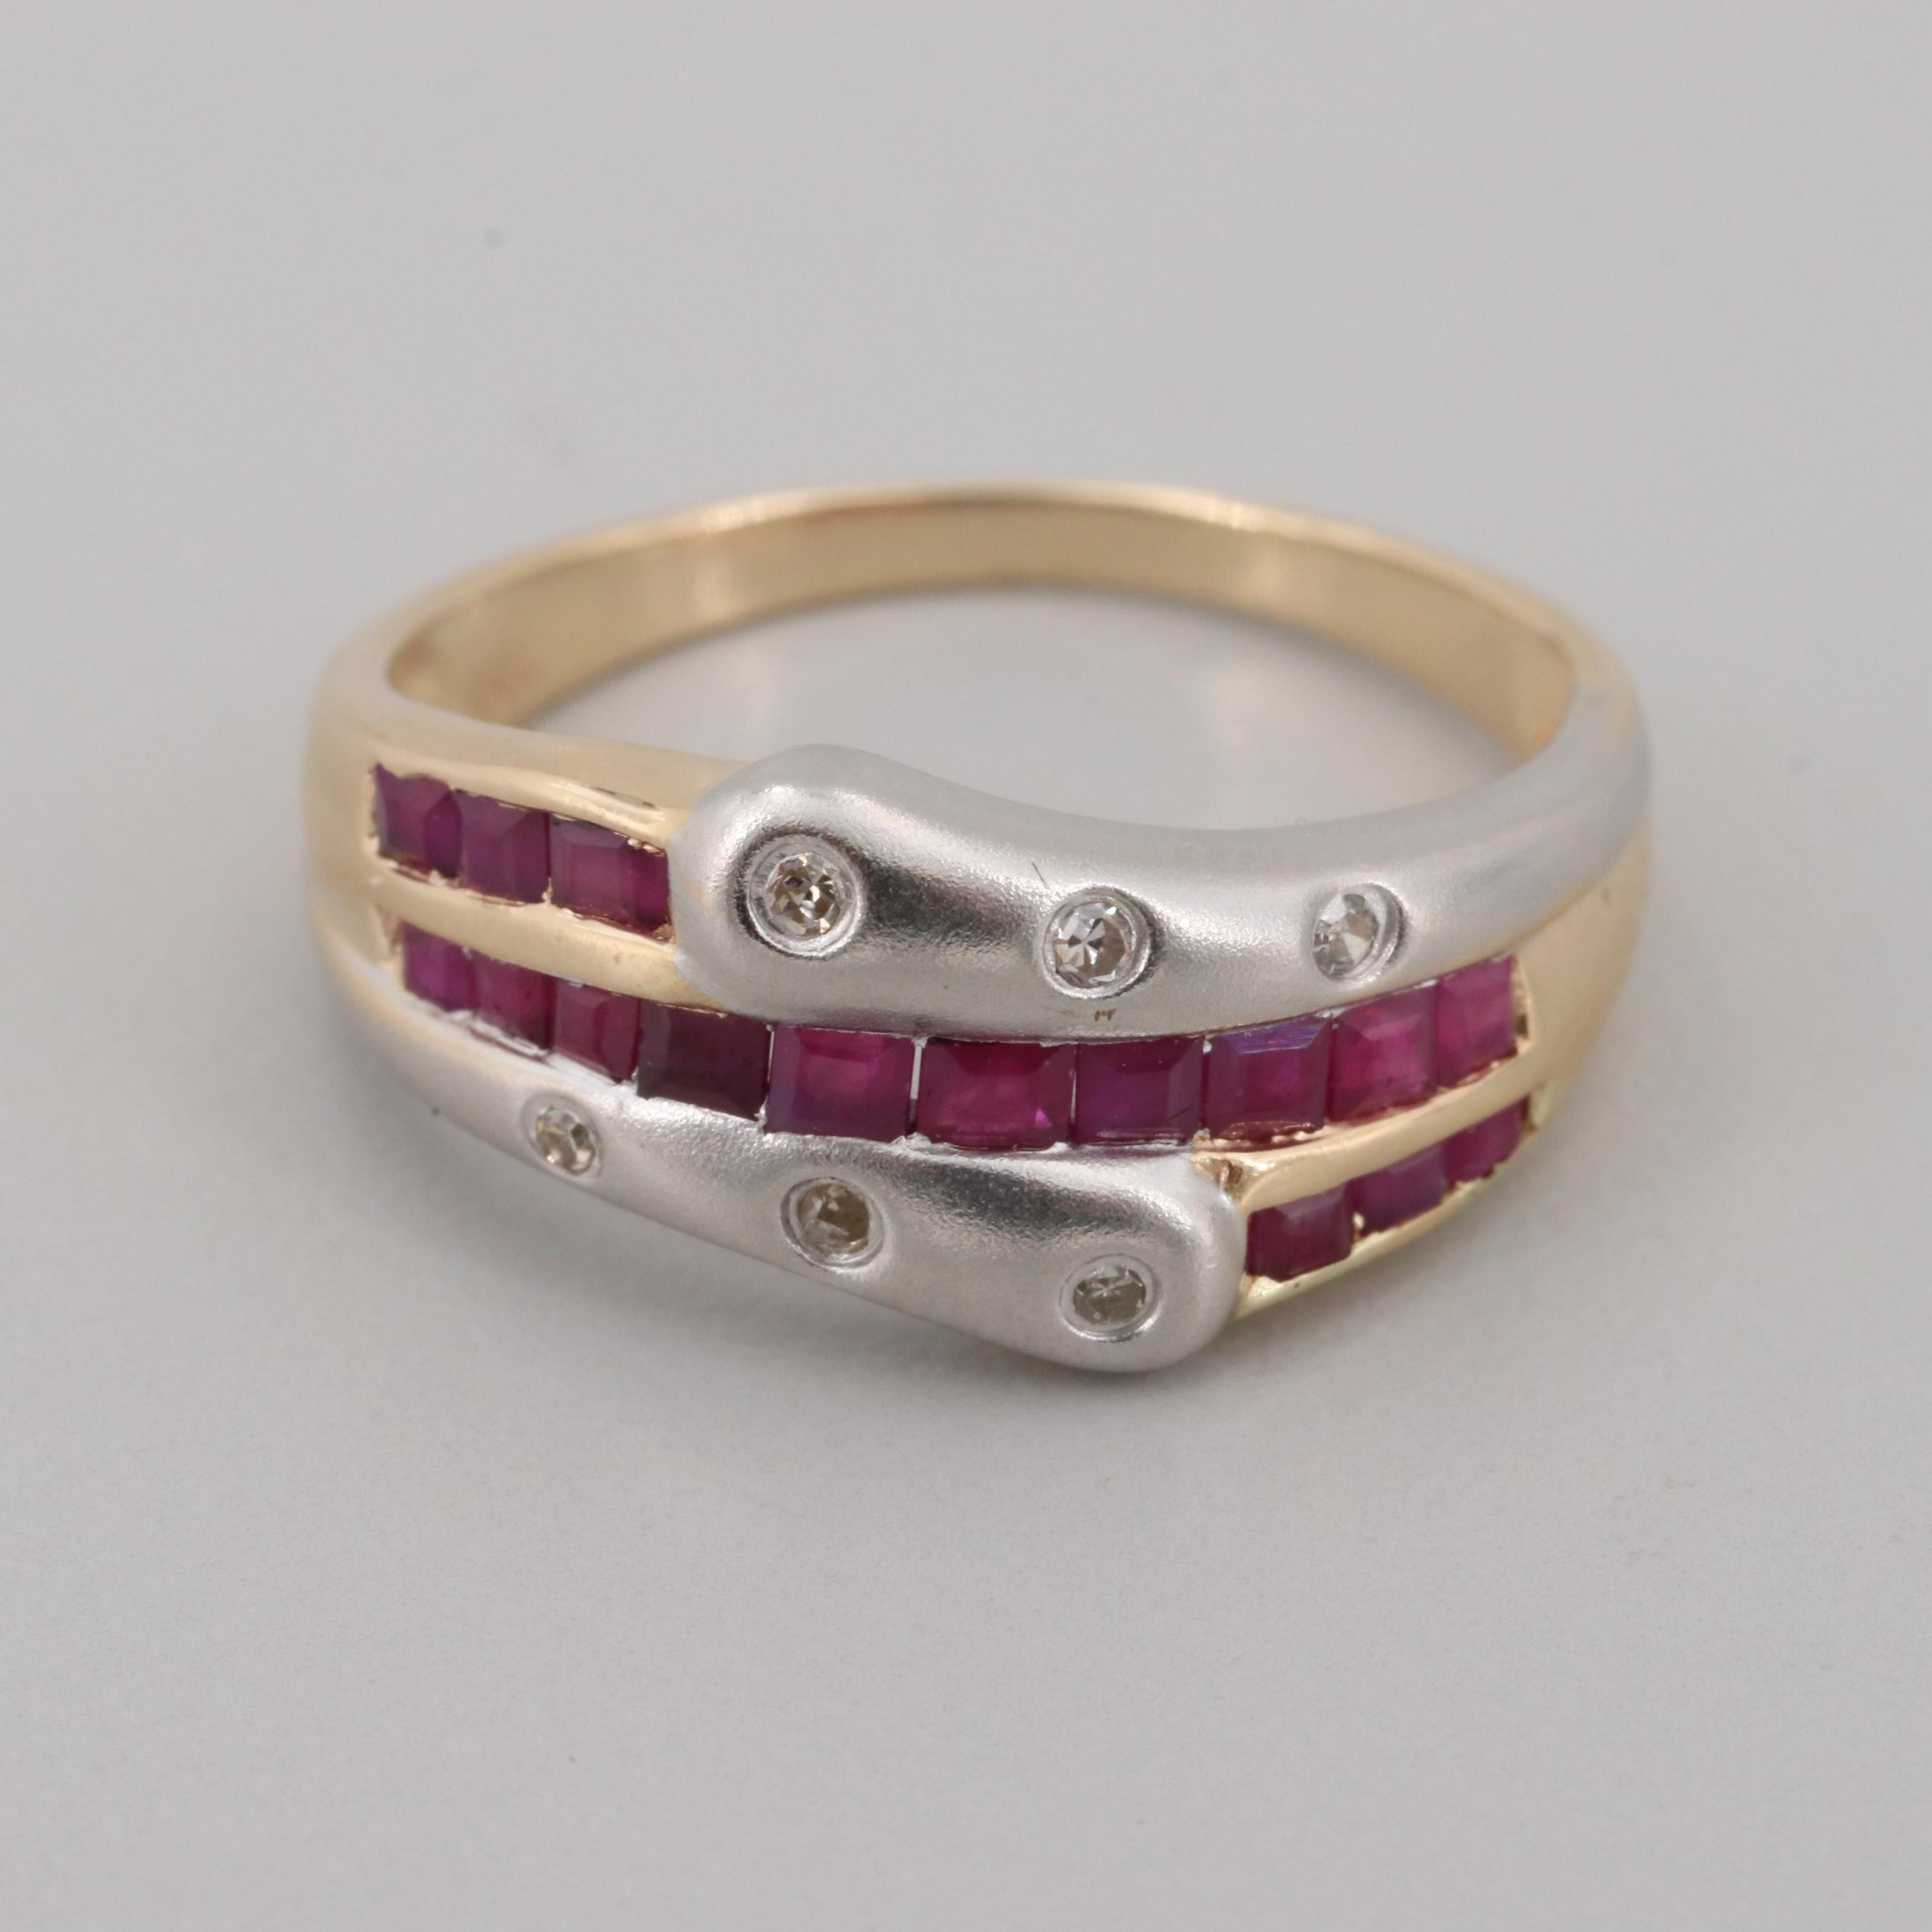 10K Yellow Gold Ruby and Diamond Ring with Rhodium Accent